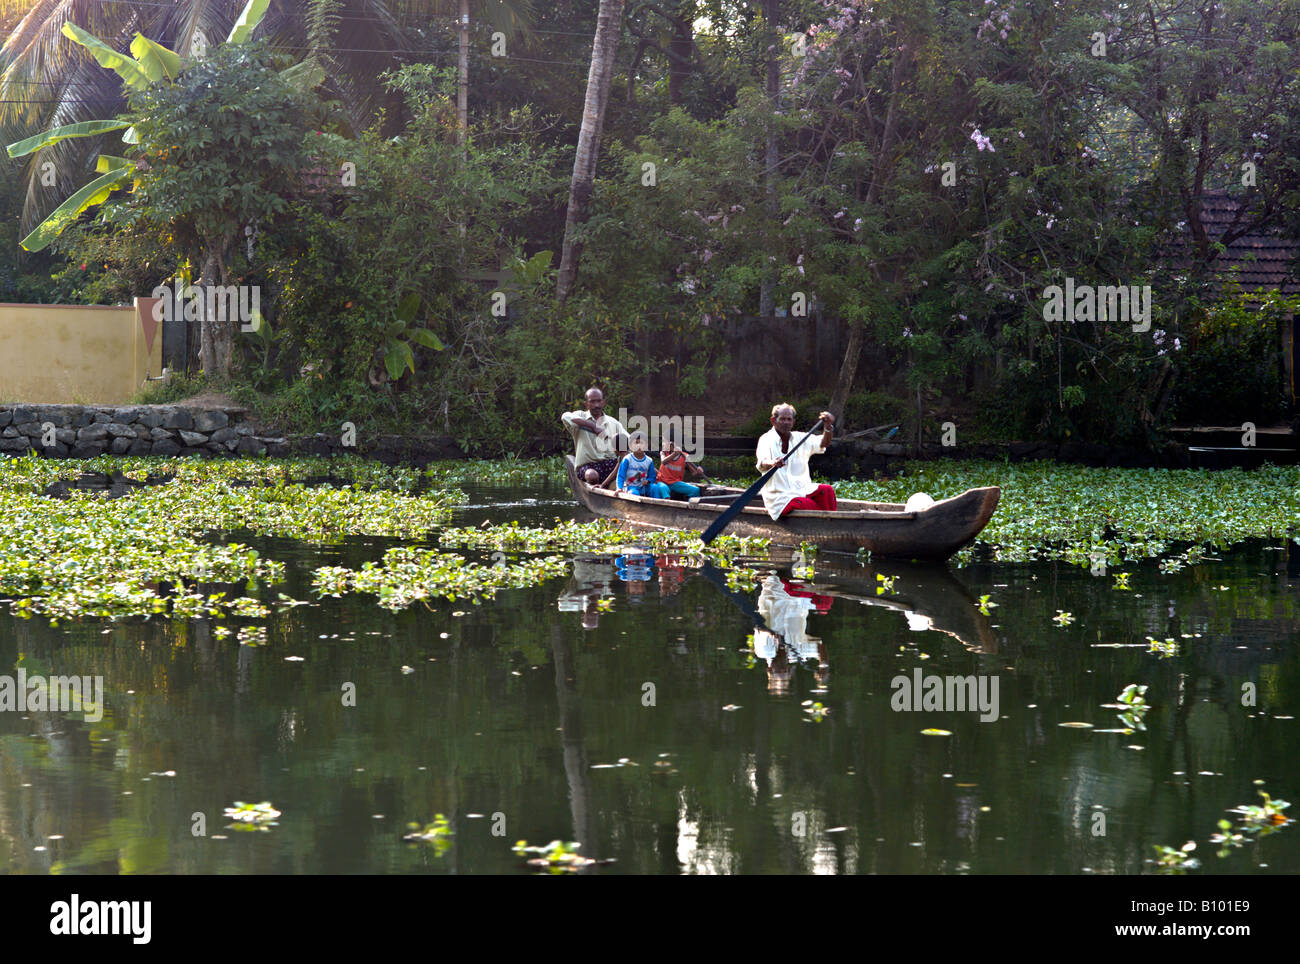 INDIA KERALA Two Indian Men And Three Boys Rowing Their Wooden Canoe Across The Canals In Backwaters Of Kerala